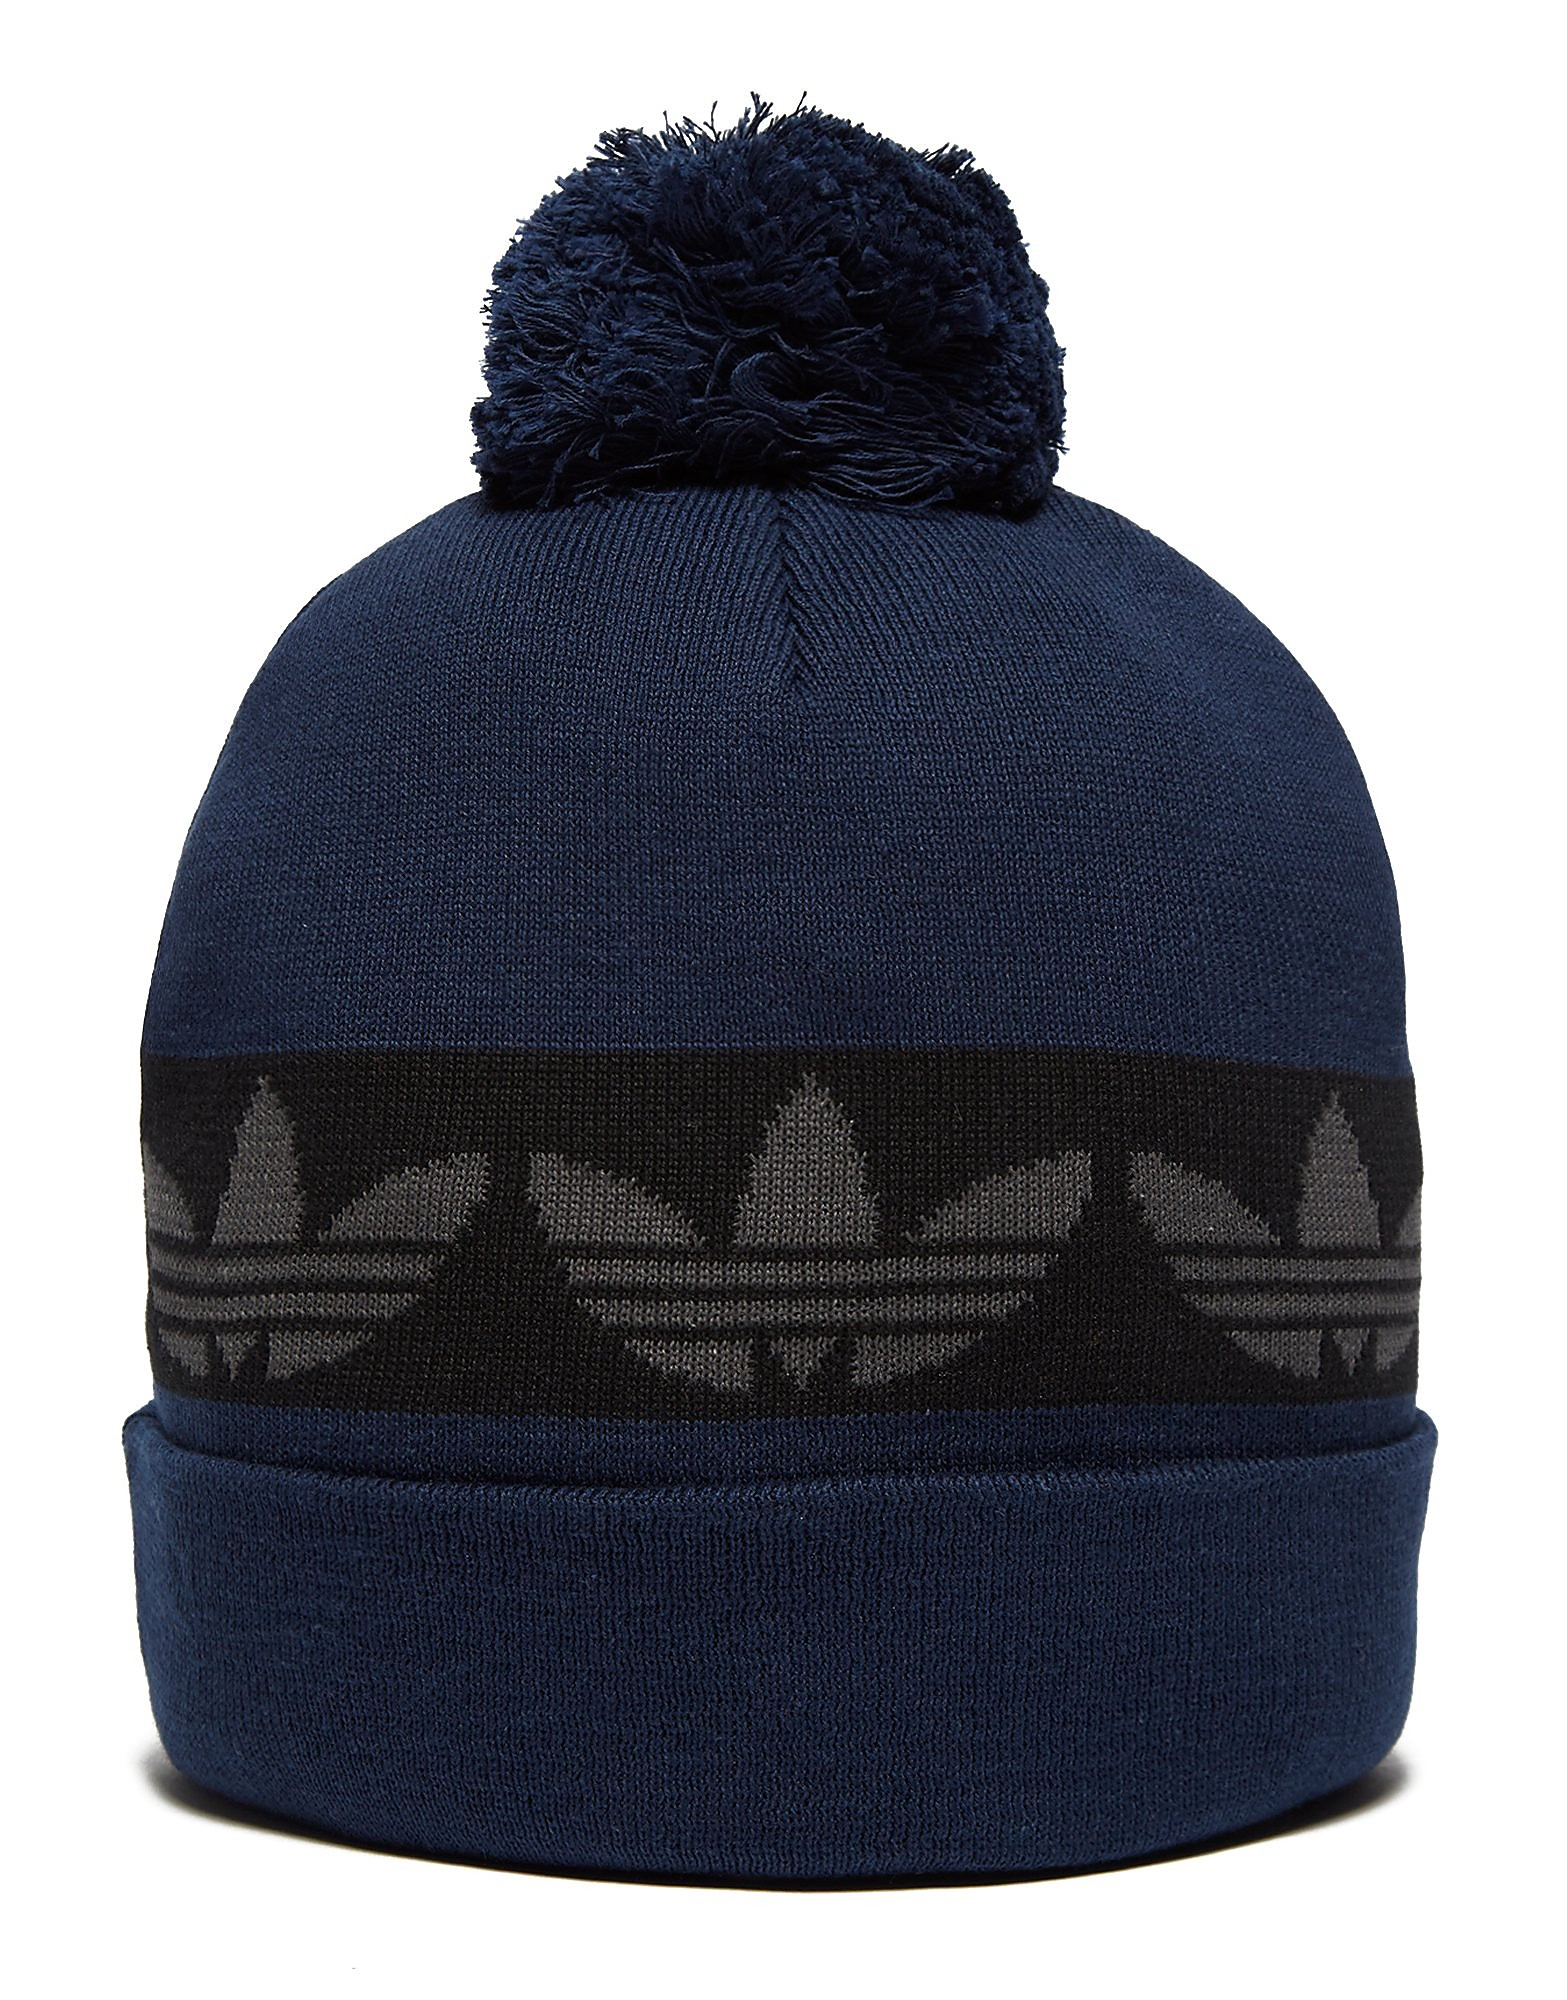 adidas Originals Bobble Beanie